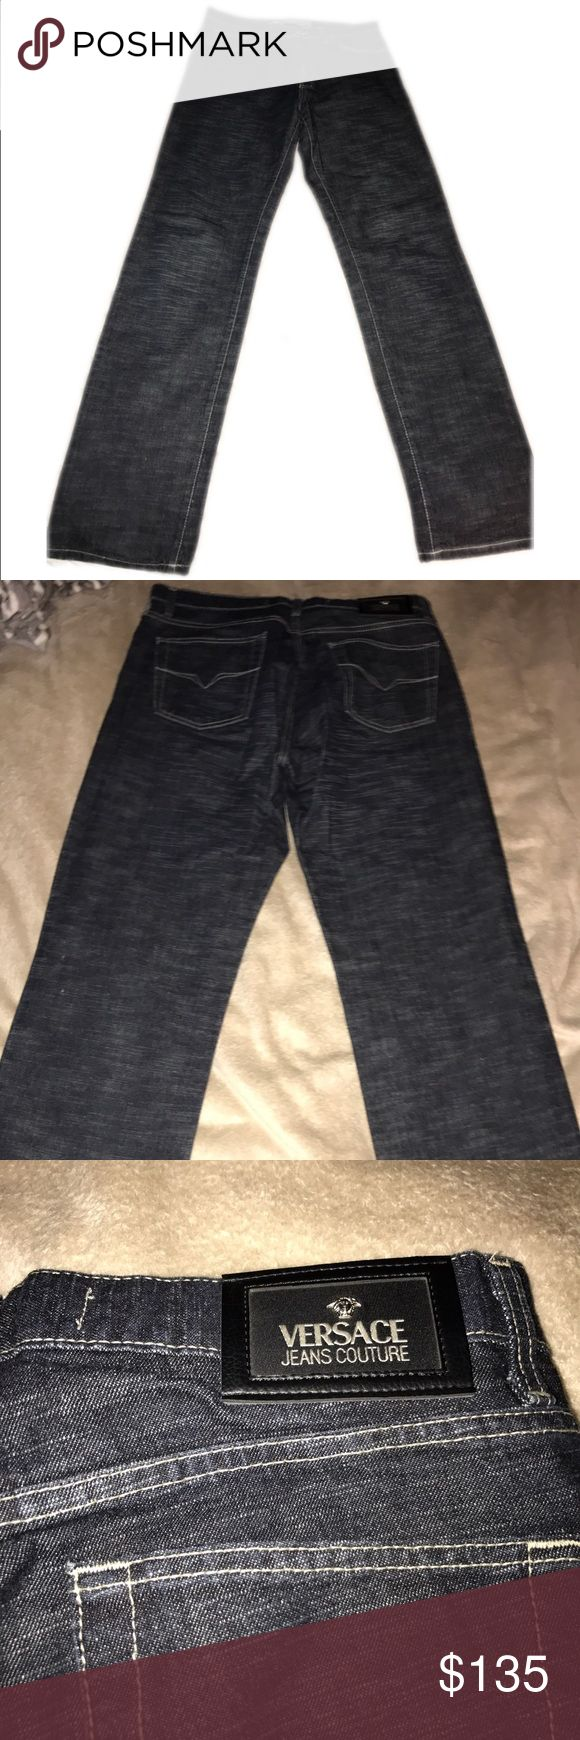 Versace Jeans Couture Only worn a couple times, perfect condition, size 34. Versace Jeans